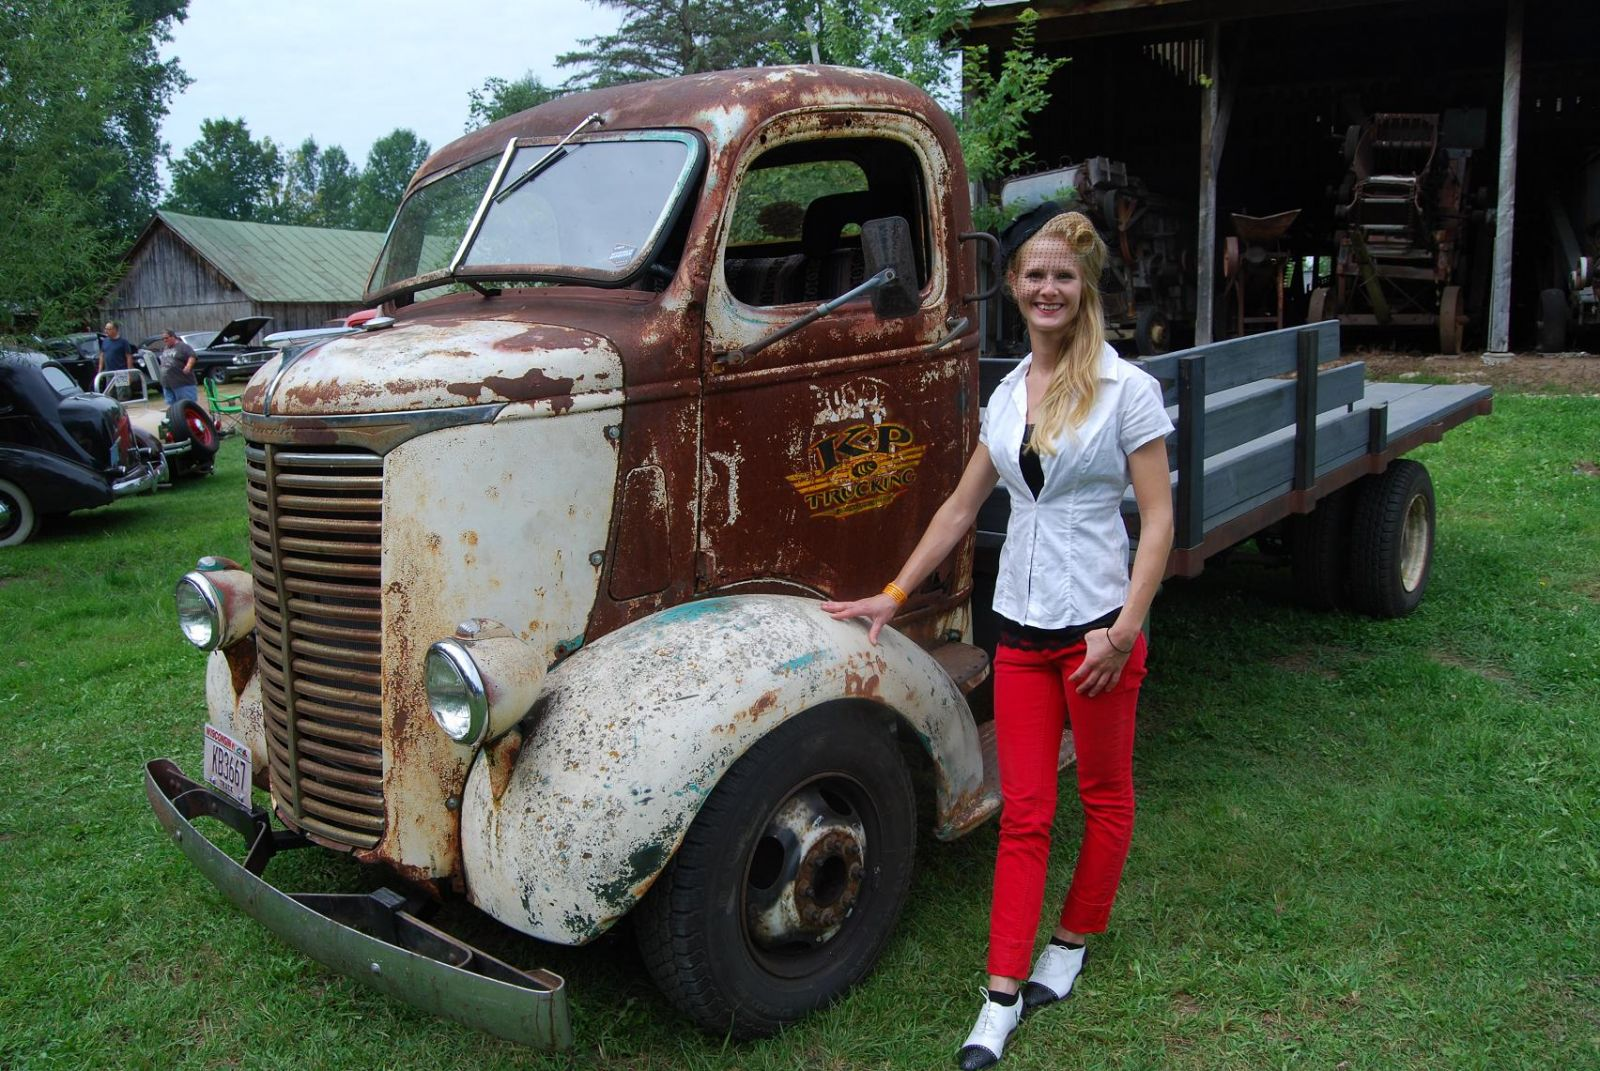 Snub-nosed Trucks Make Cool Hot Rods | Hotrod Hotline